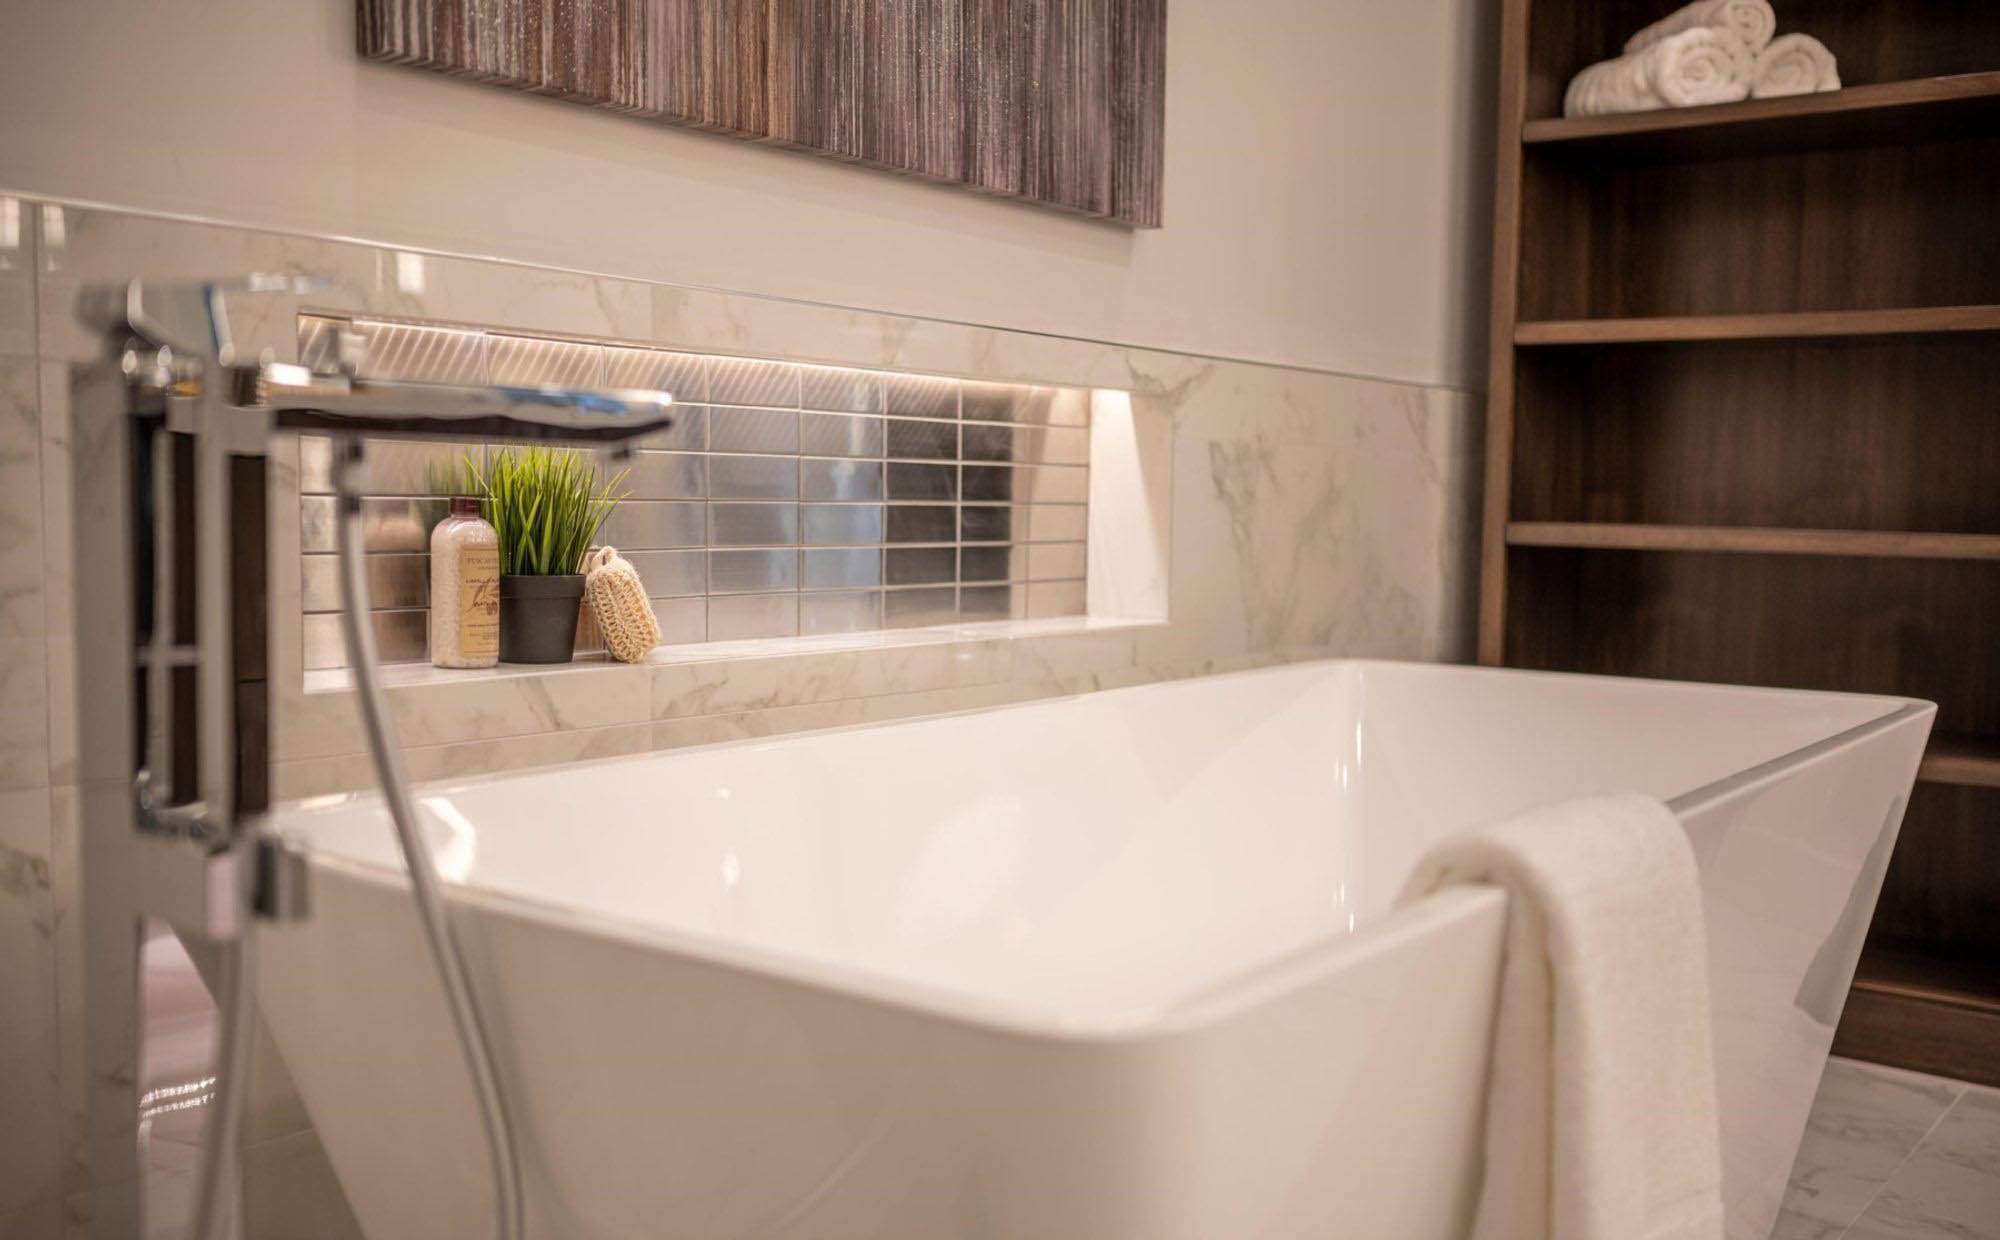 Modern creamy white soaking tub with built in shelf. Metallic backsplash tile matches the chrome faucet stack. The room has a warm undertone throughout.